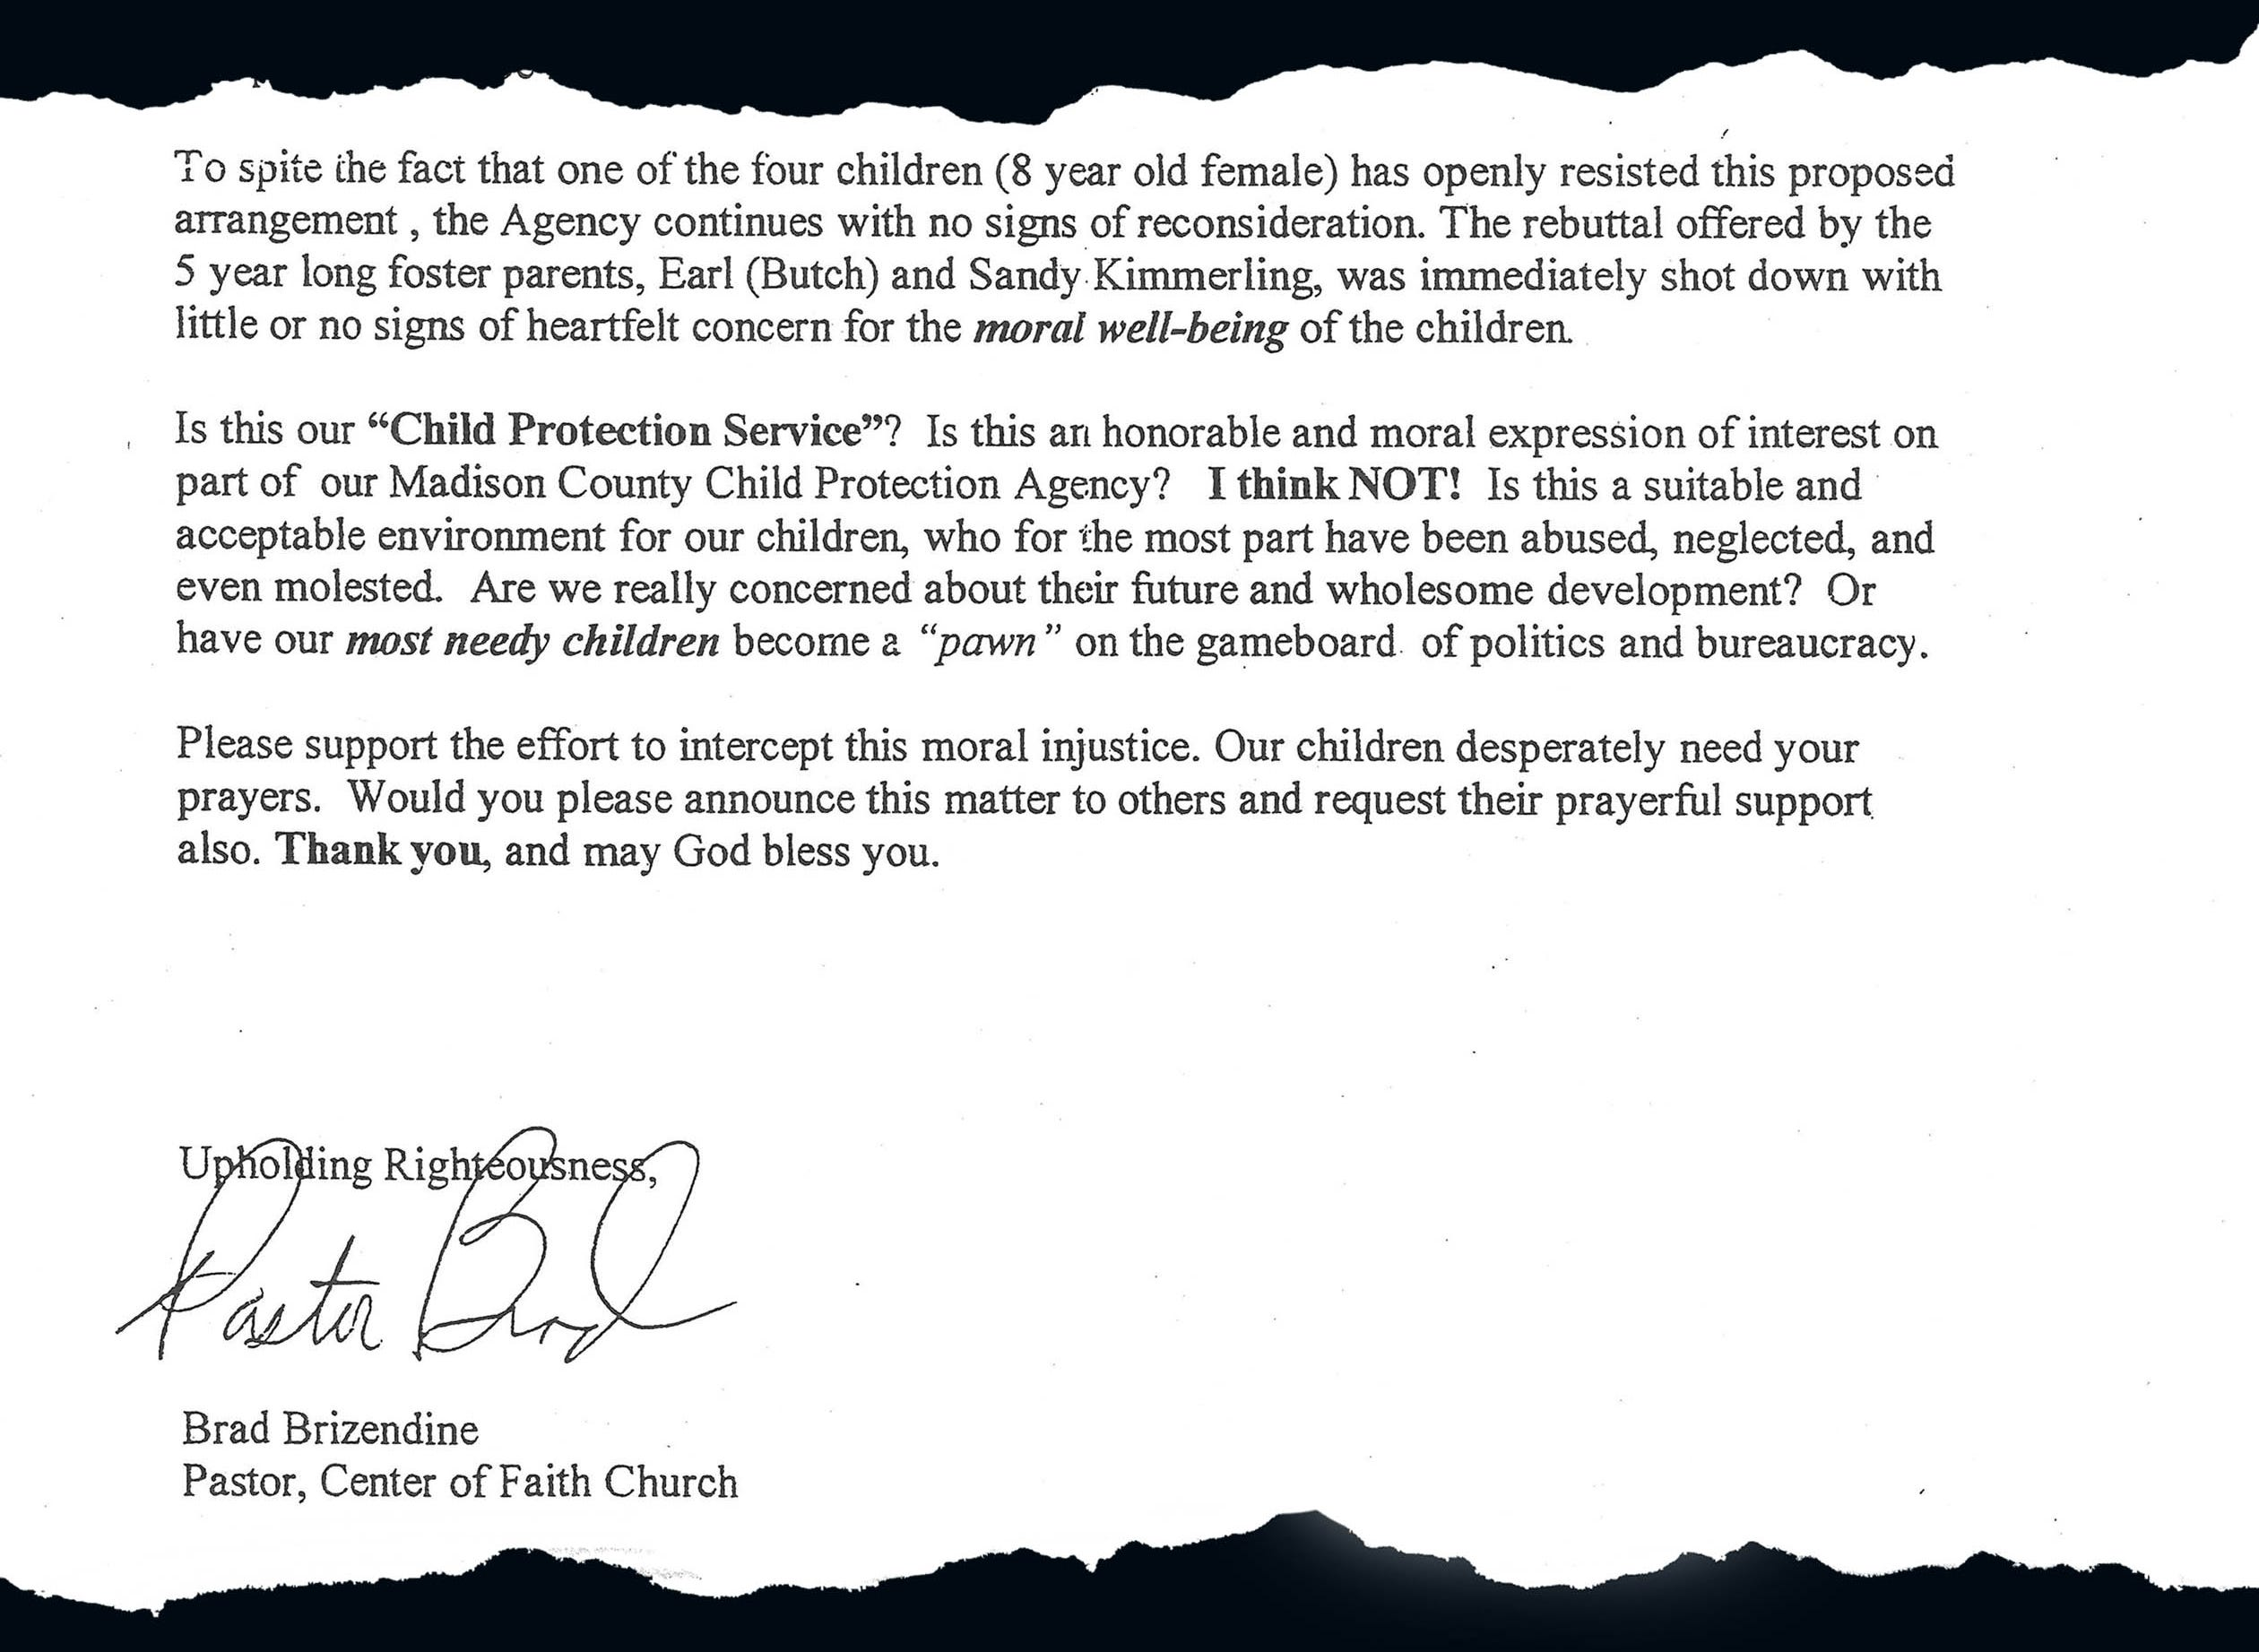 A portion of the letter Brad Brizendine, pastor of Center of Faith Church, sent to area churches.